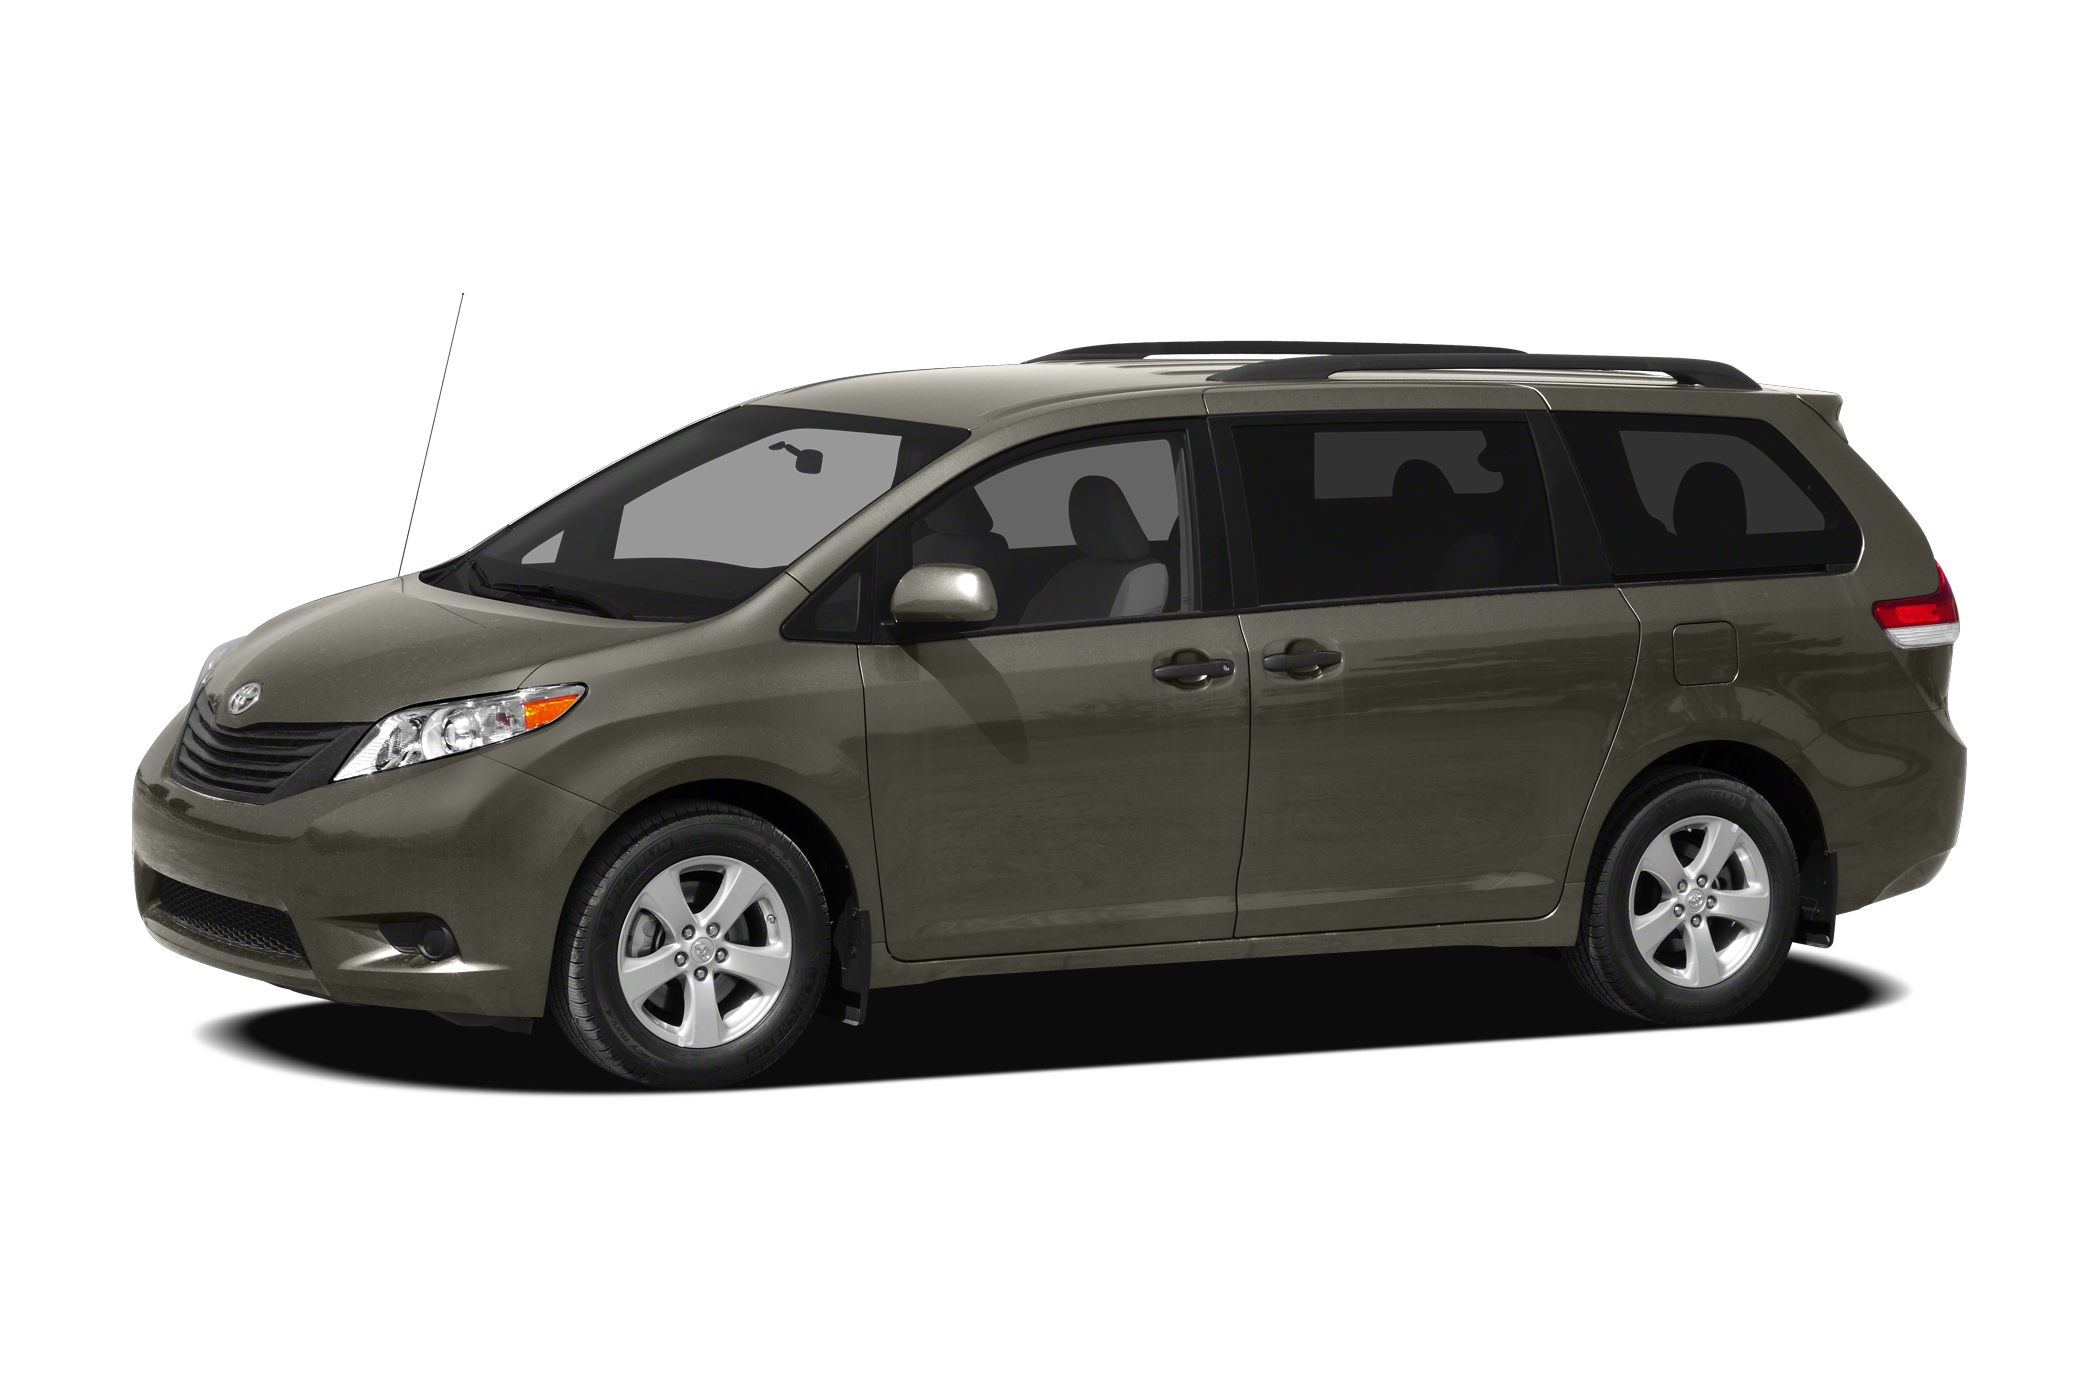 2012 Toyota Sienna LE 7 Passenger LOW MILES - 19331 BLACK exterior and LIGHT GRAY interior Thir